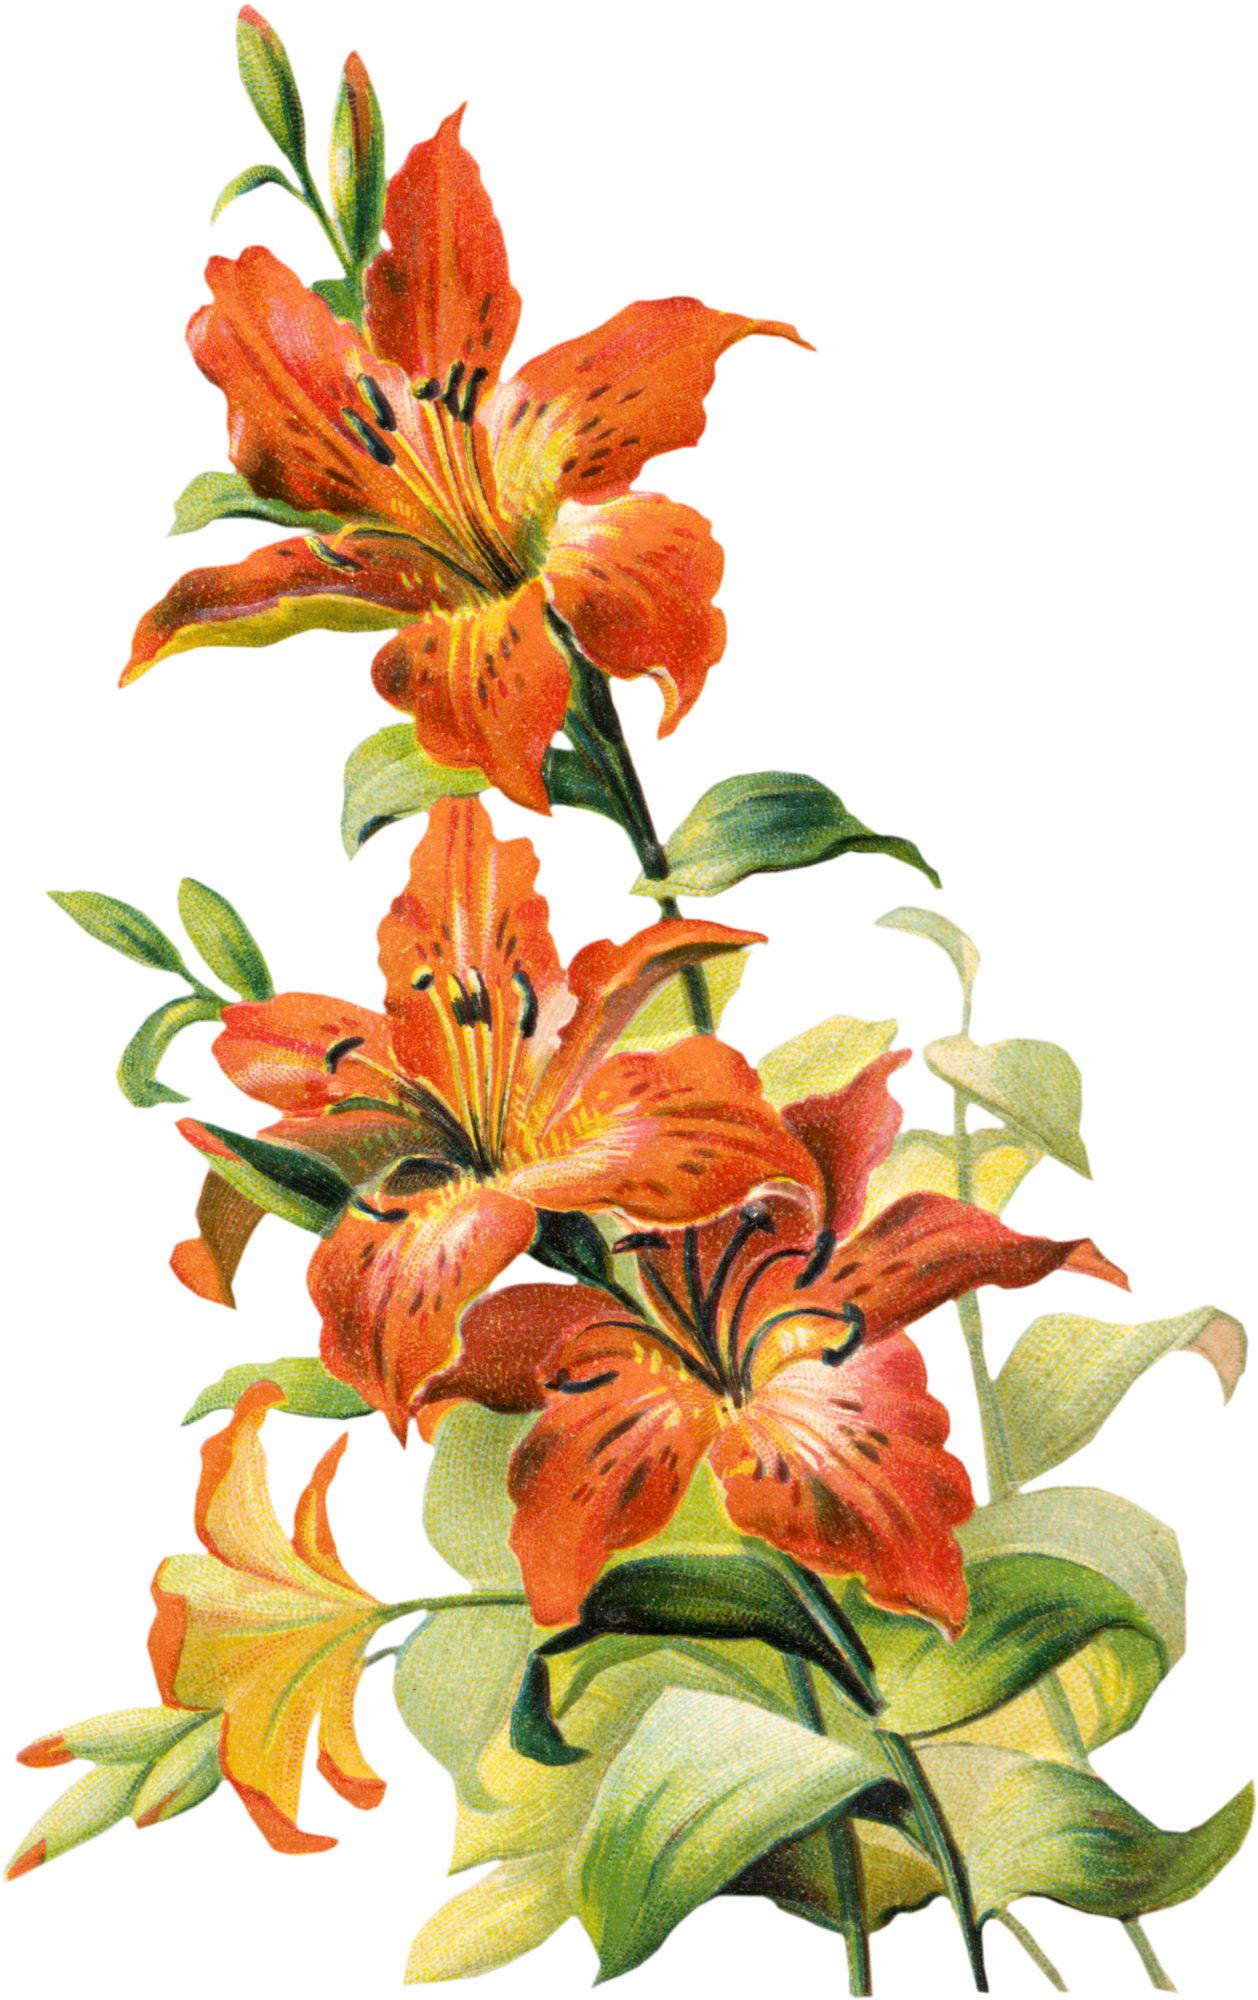 Image Tiger Lily Flower Clipart Free Clip Art Images Zda1r7